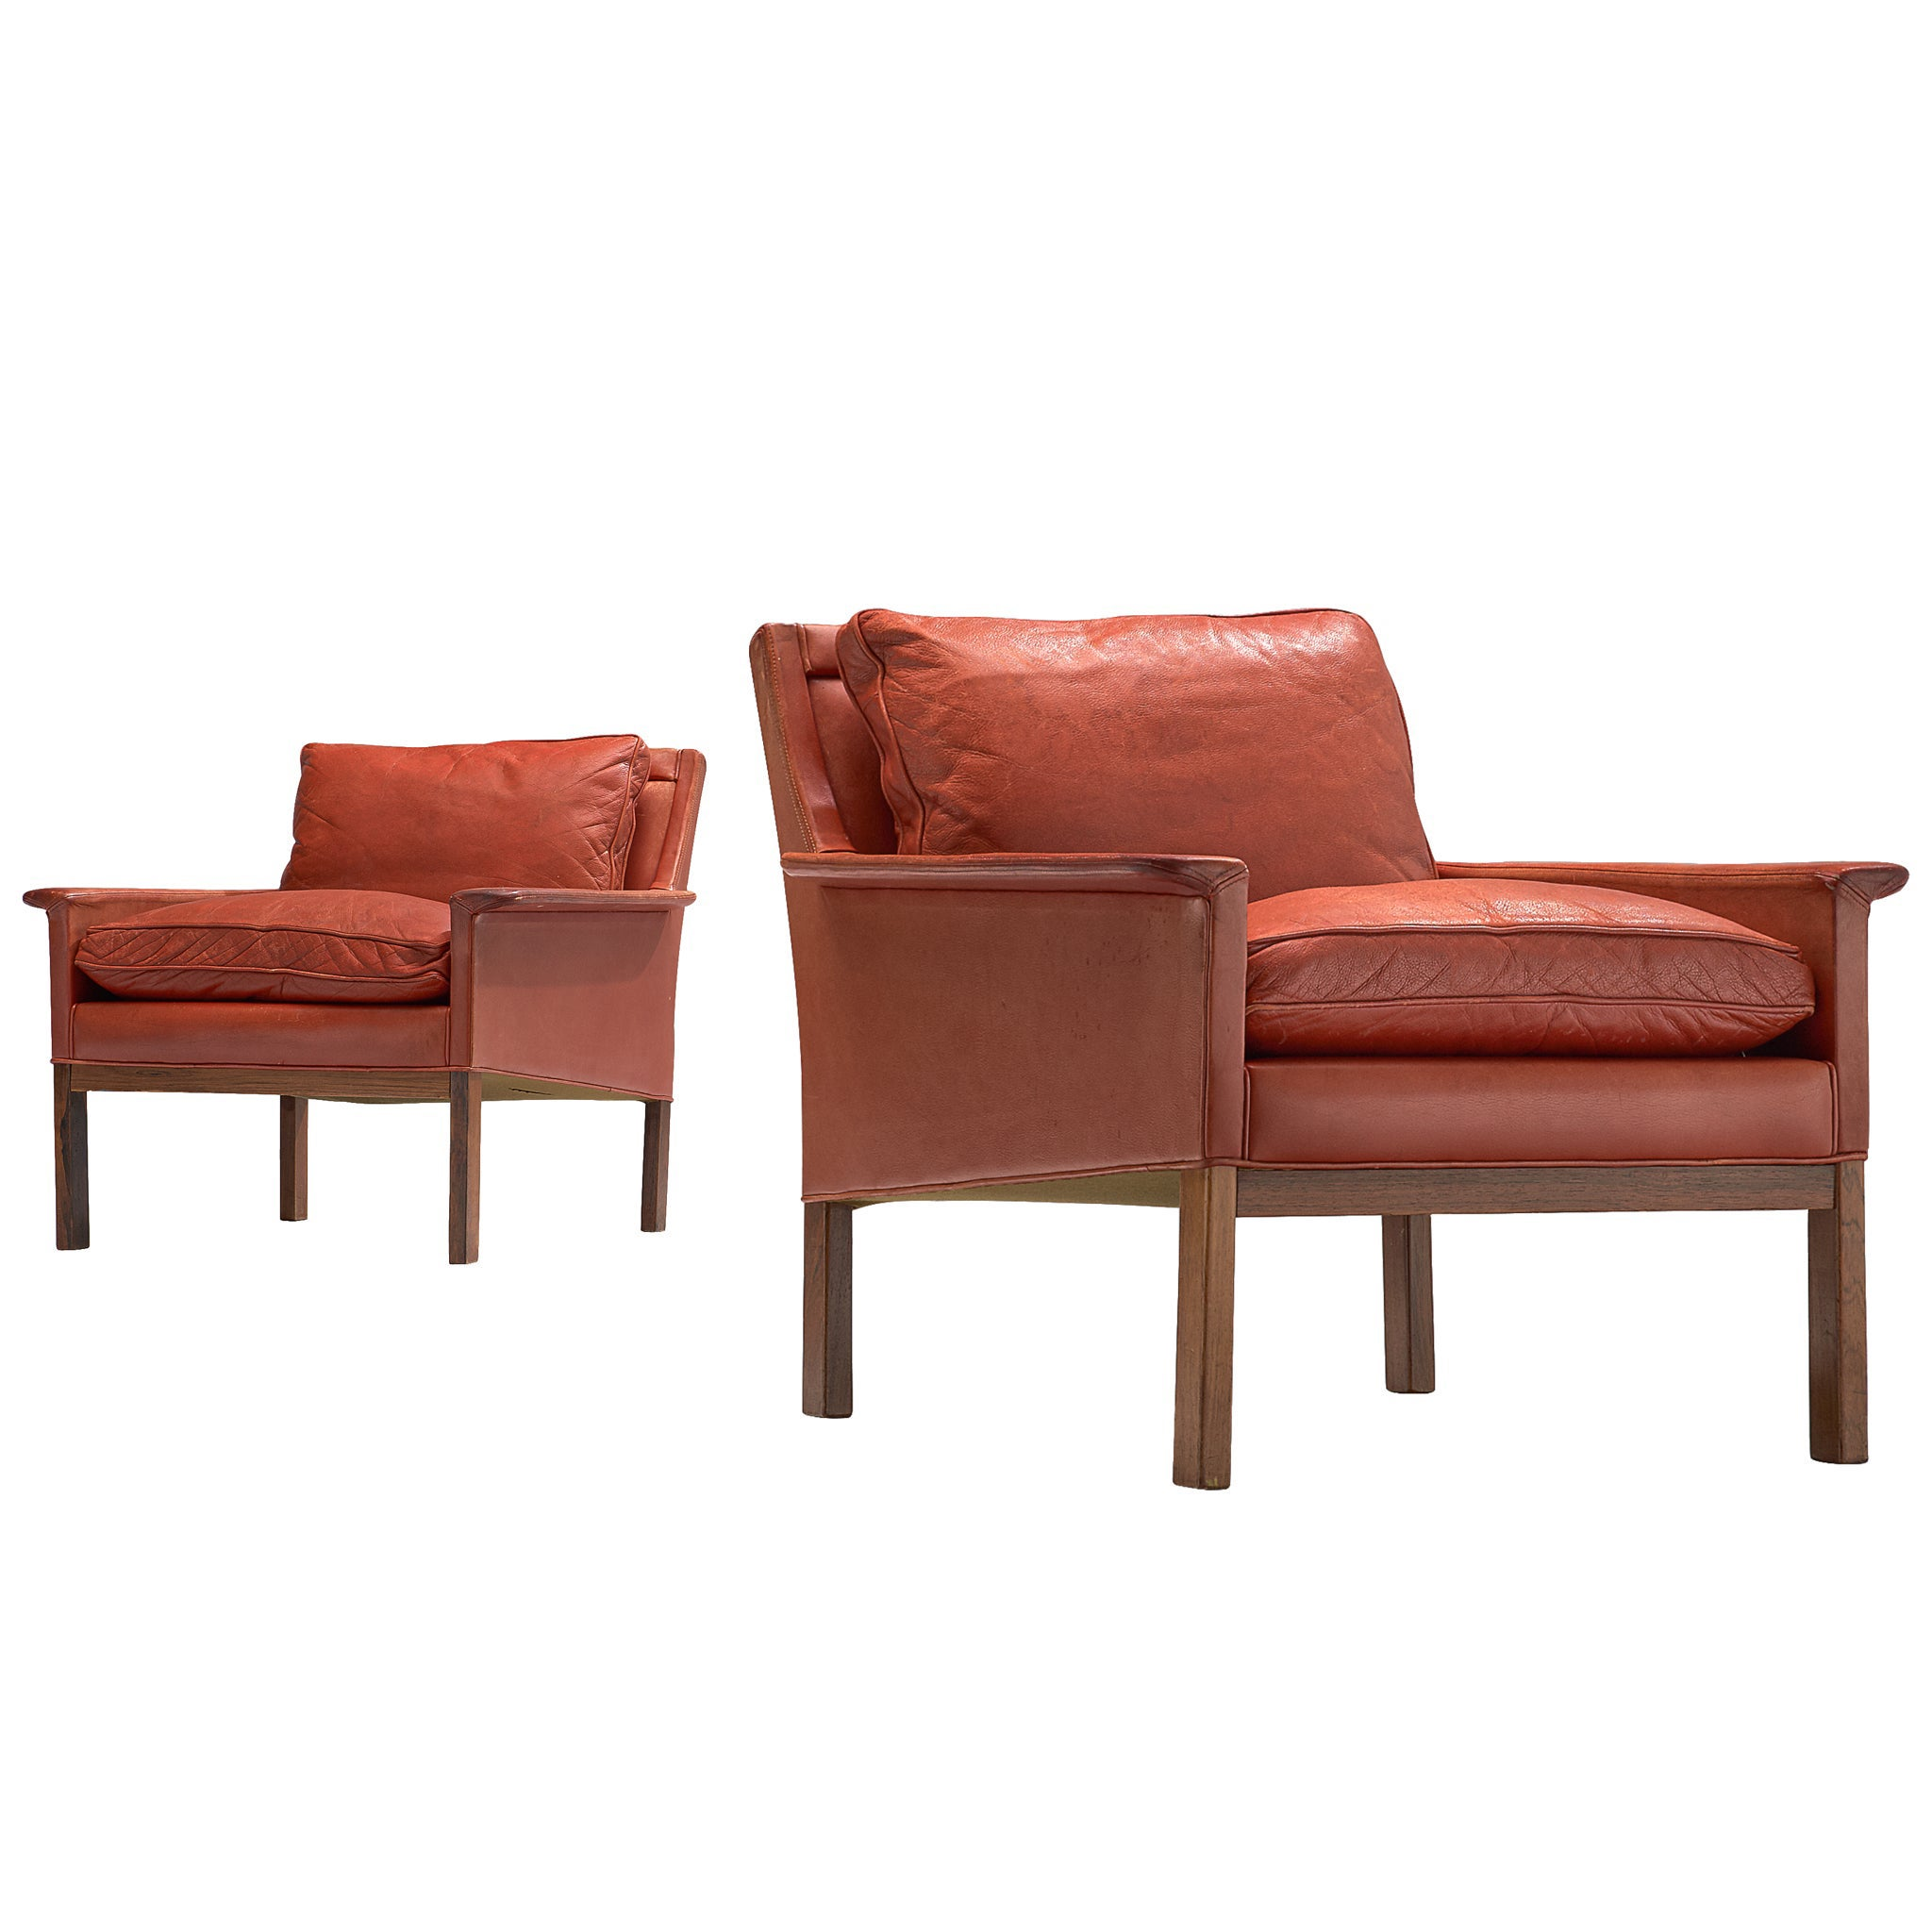 Pair of Danish Lounge Chairs in Red Leather